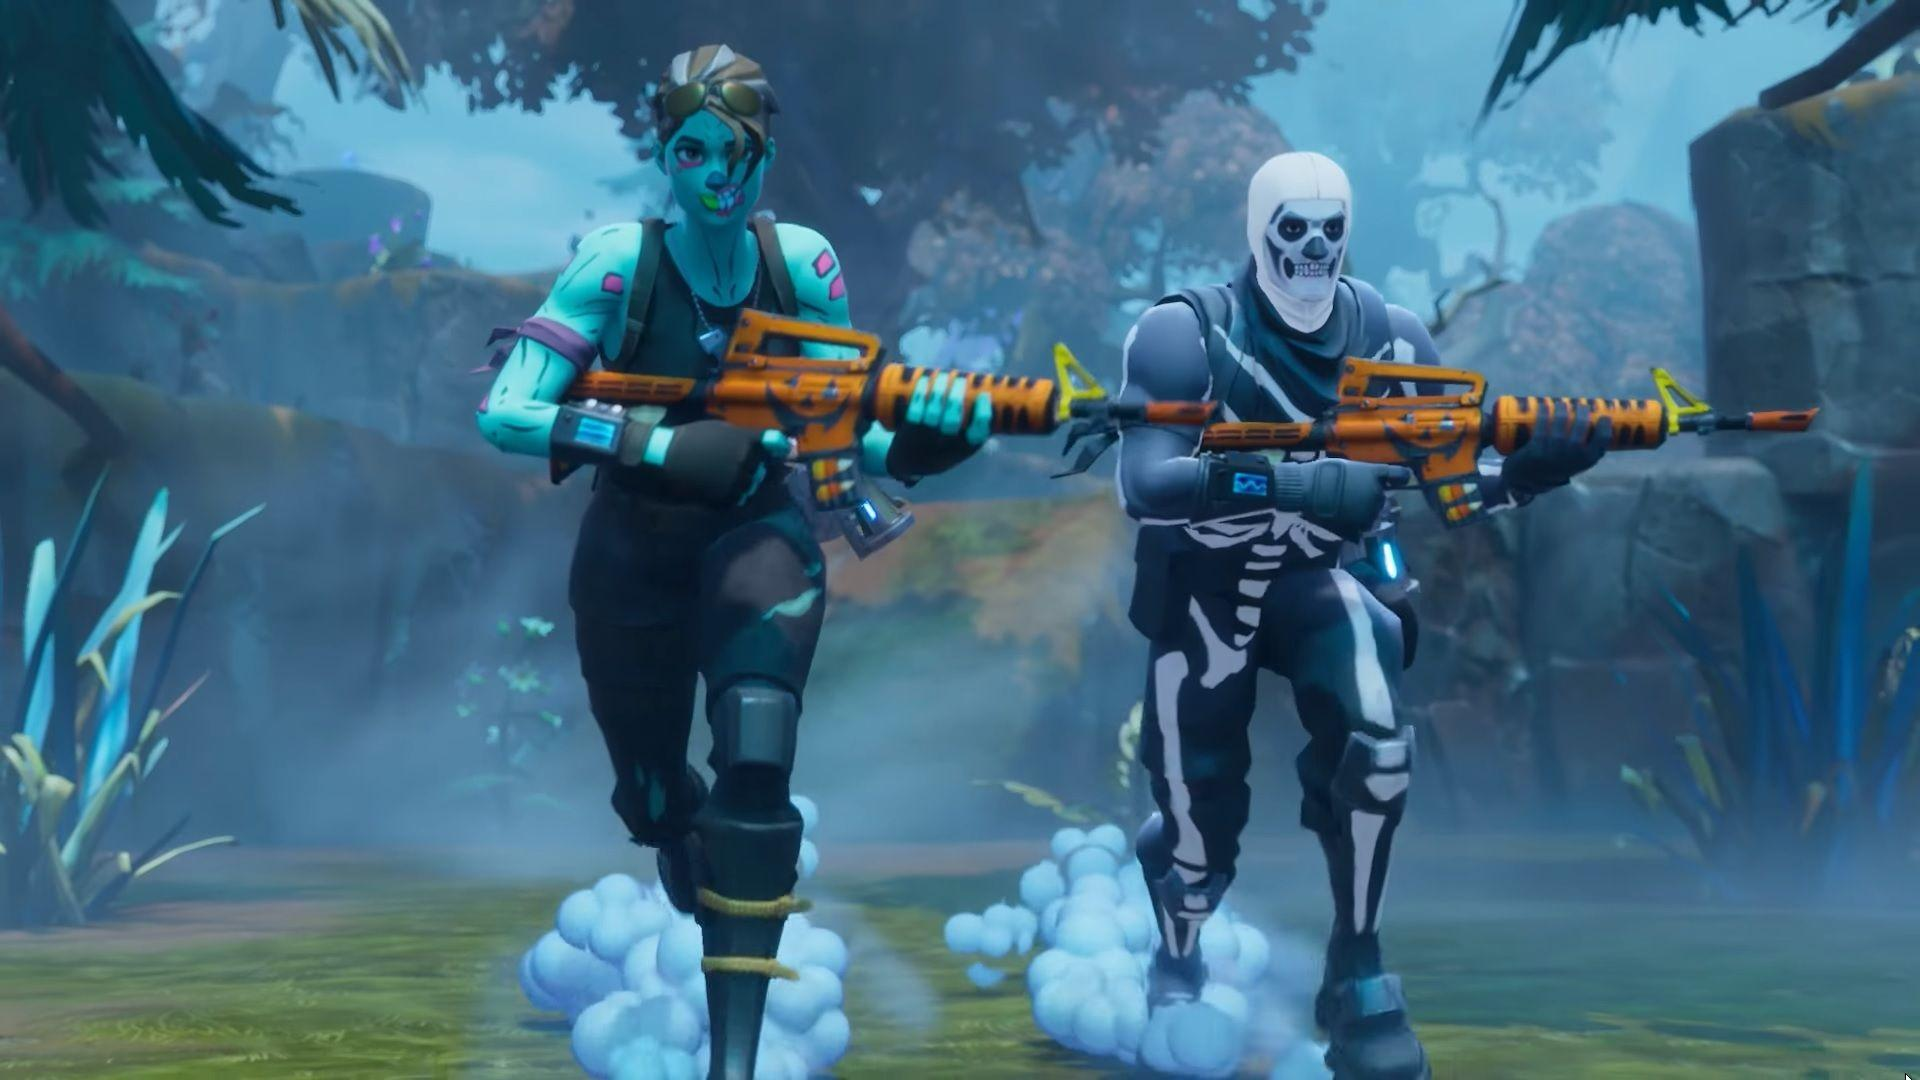 Fortnite's Fortnitemares Event Release Date Has Been Leaked